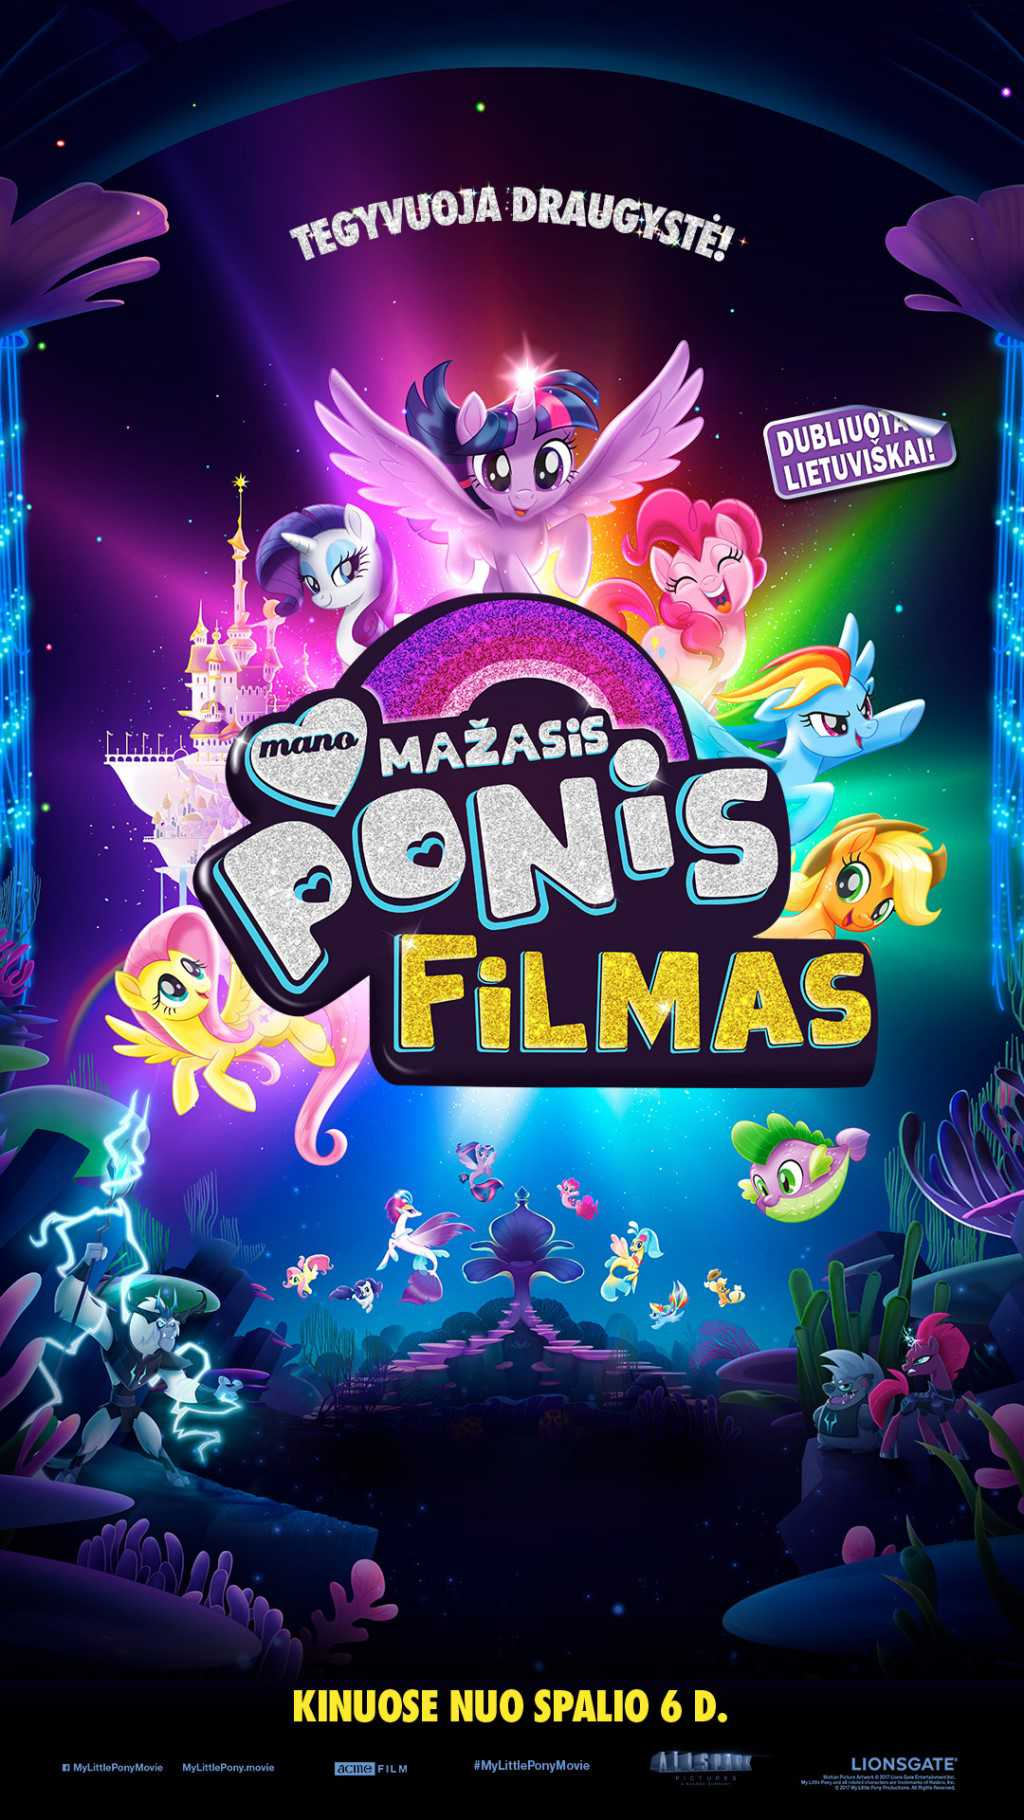 Mano mažasis ponis (MY LITTLE PONY)